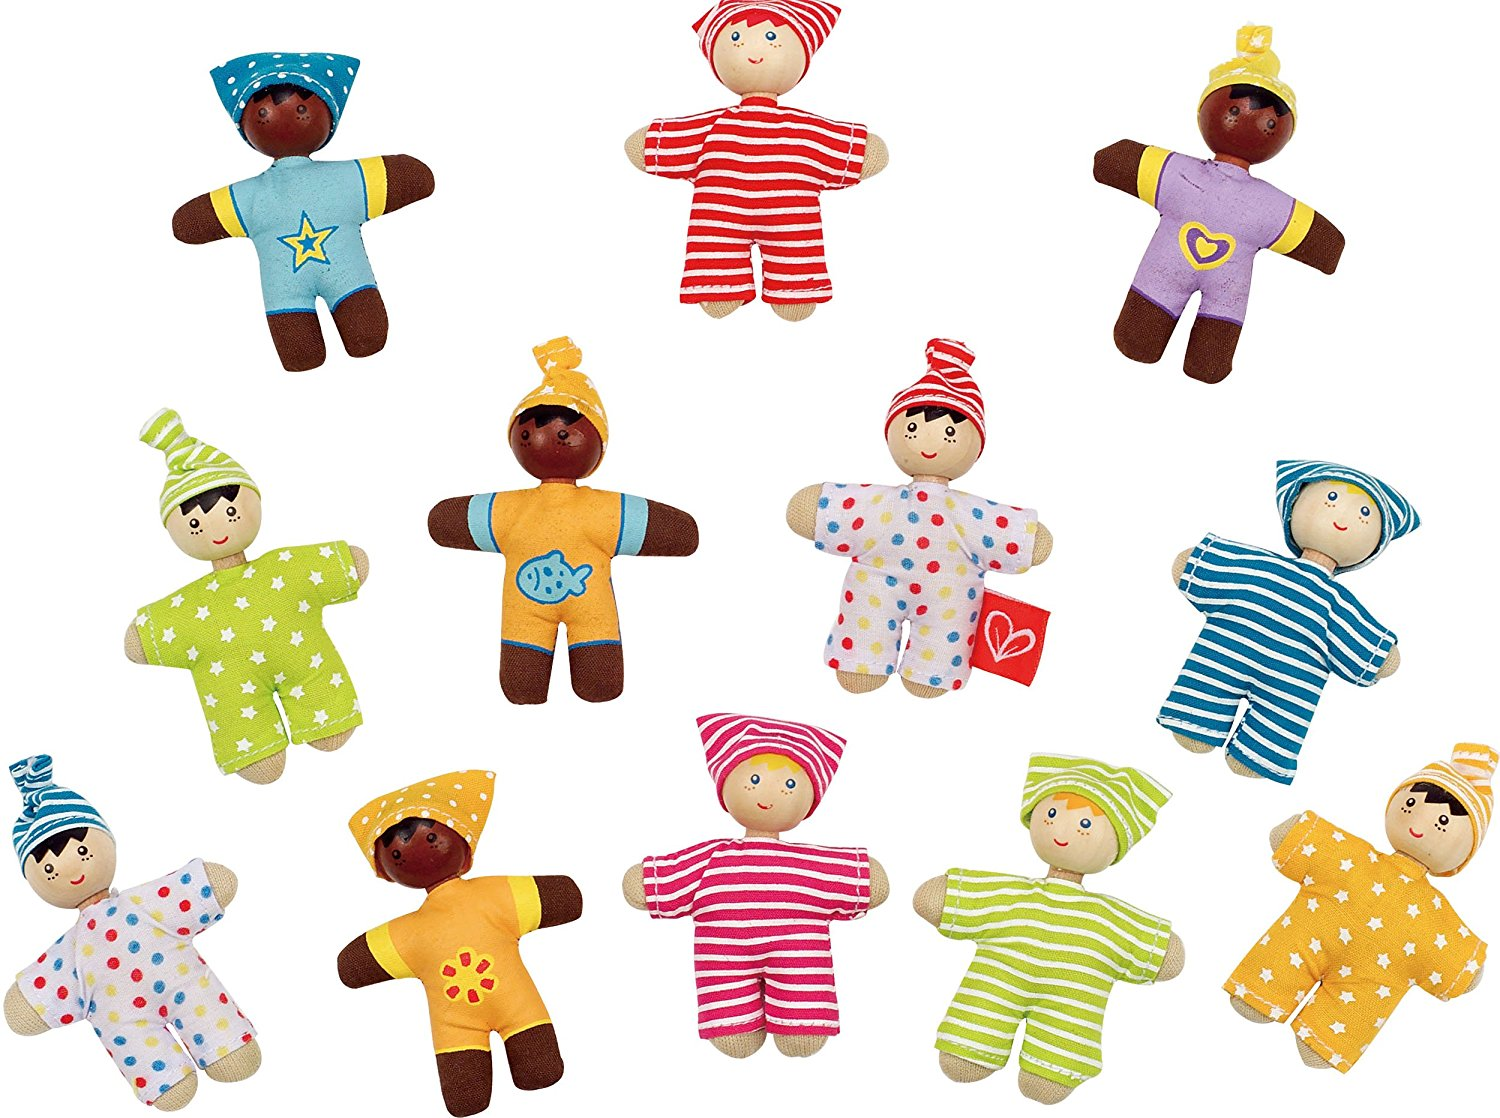 Hape Happy Babies Toddler Pocket Dolls Set of 12 - WoodenToys.com